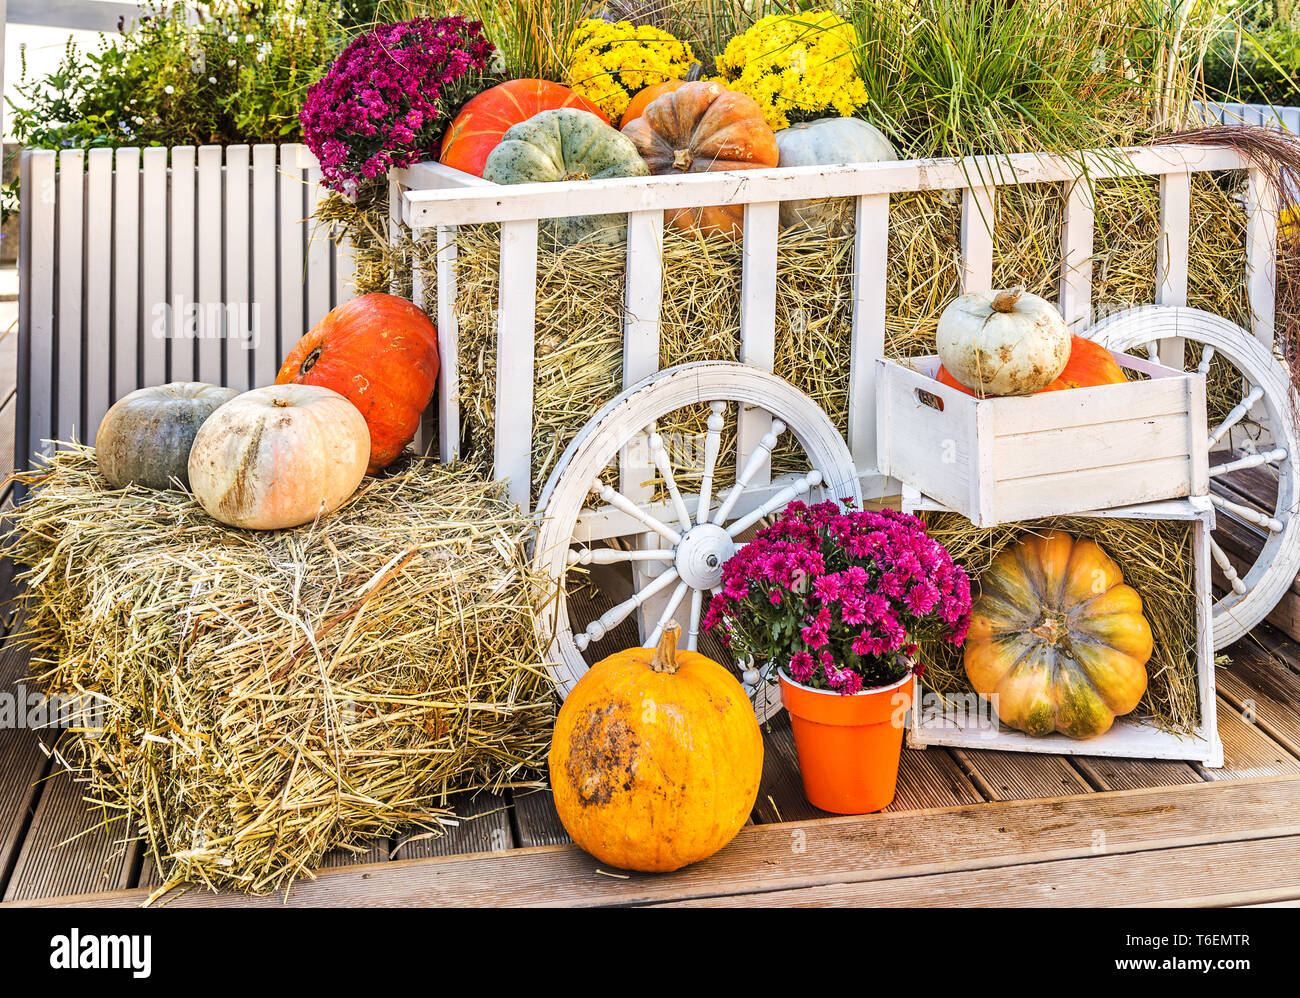 Pumpkins on market - Stock Image